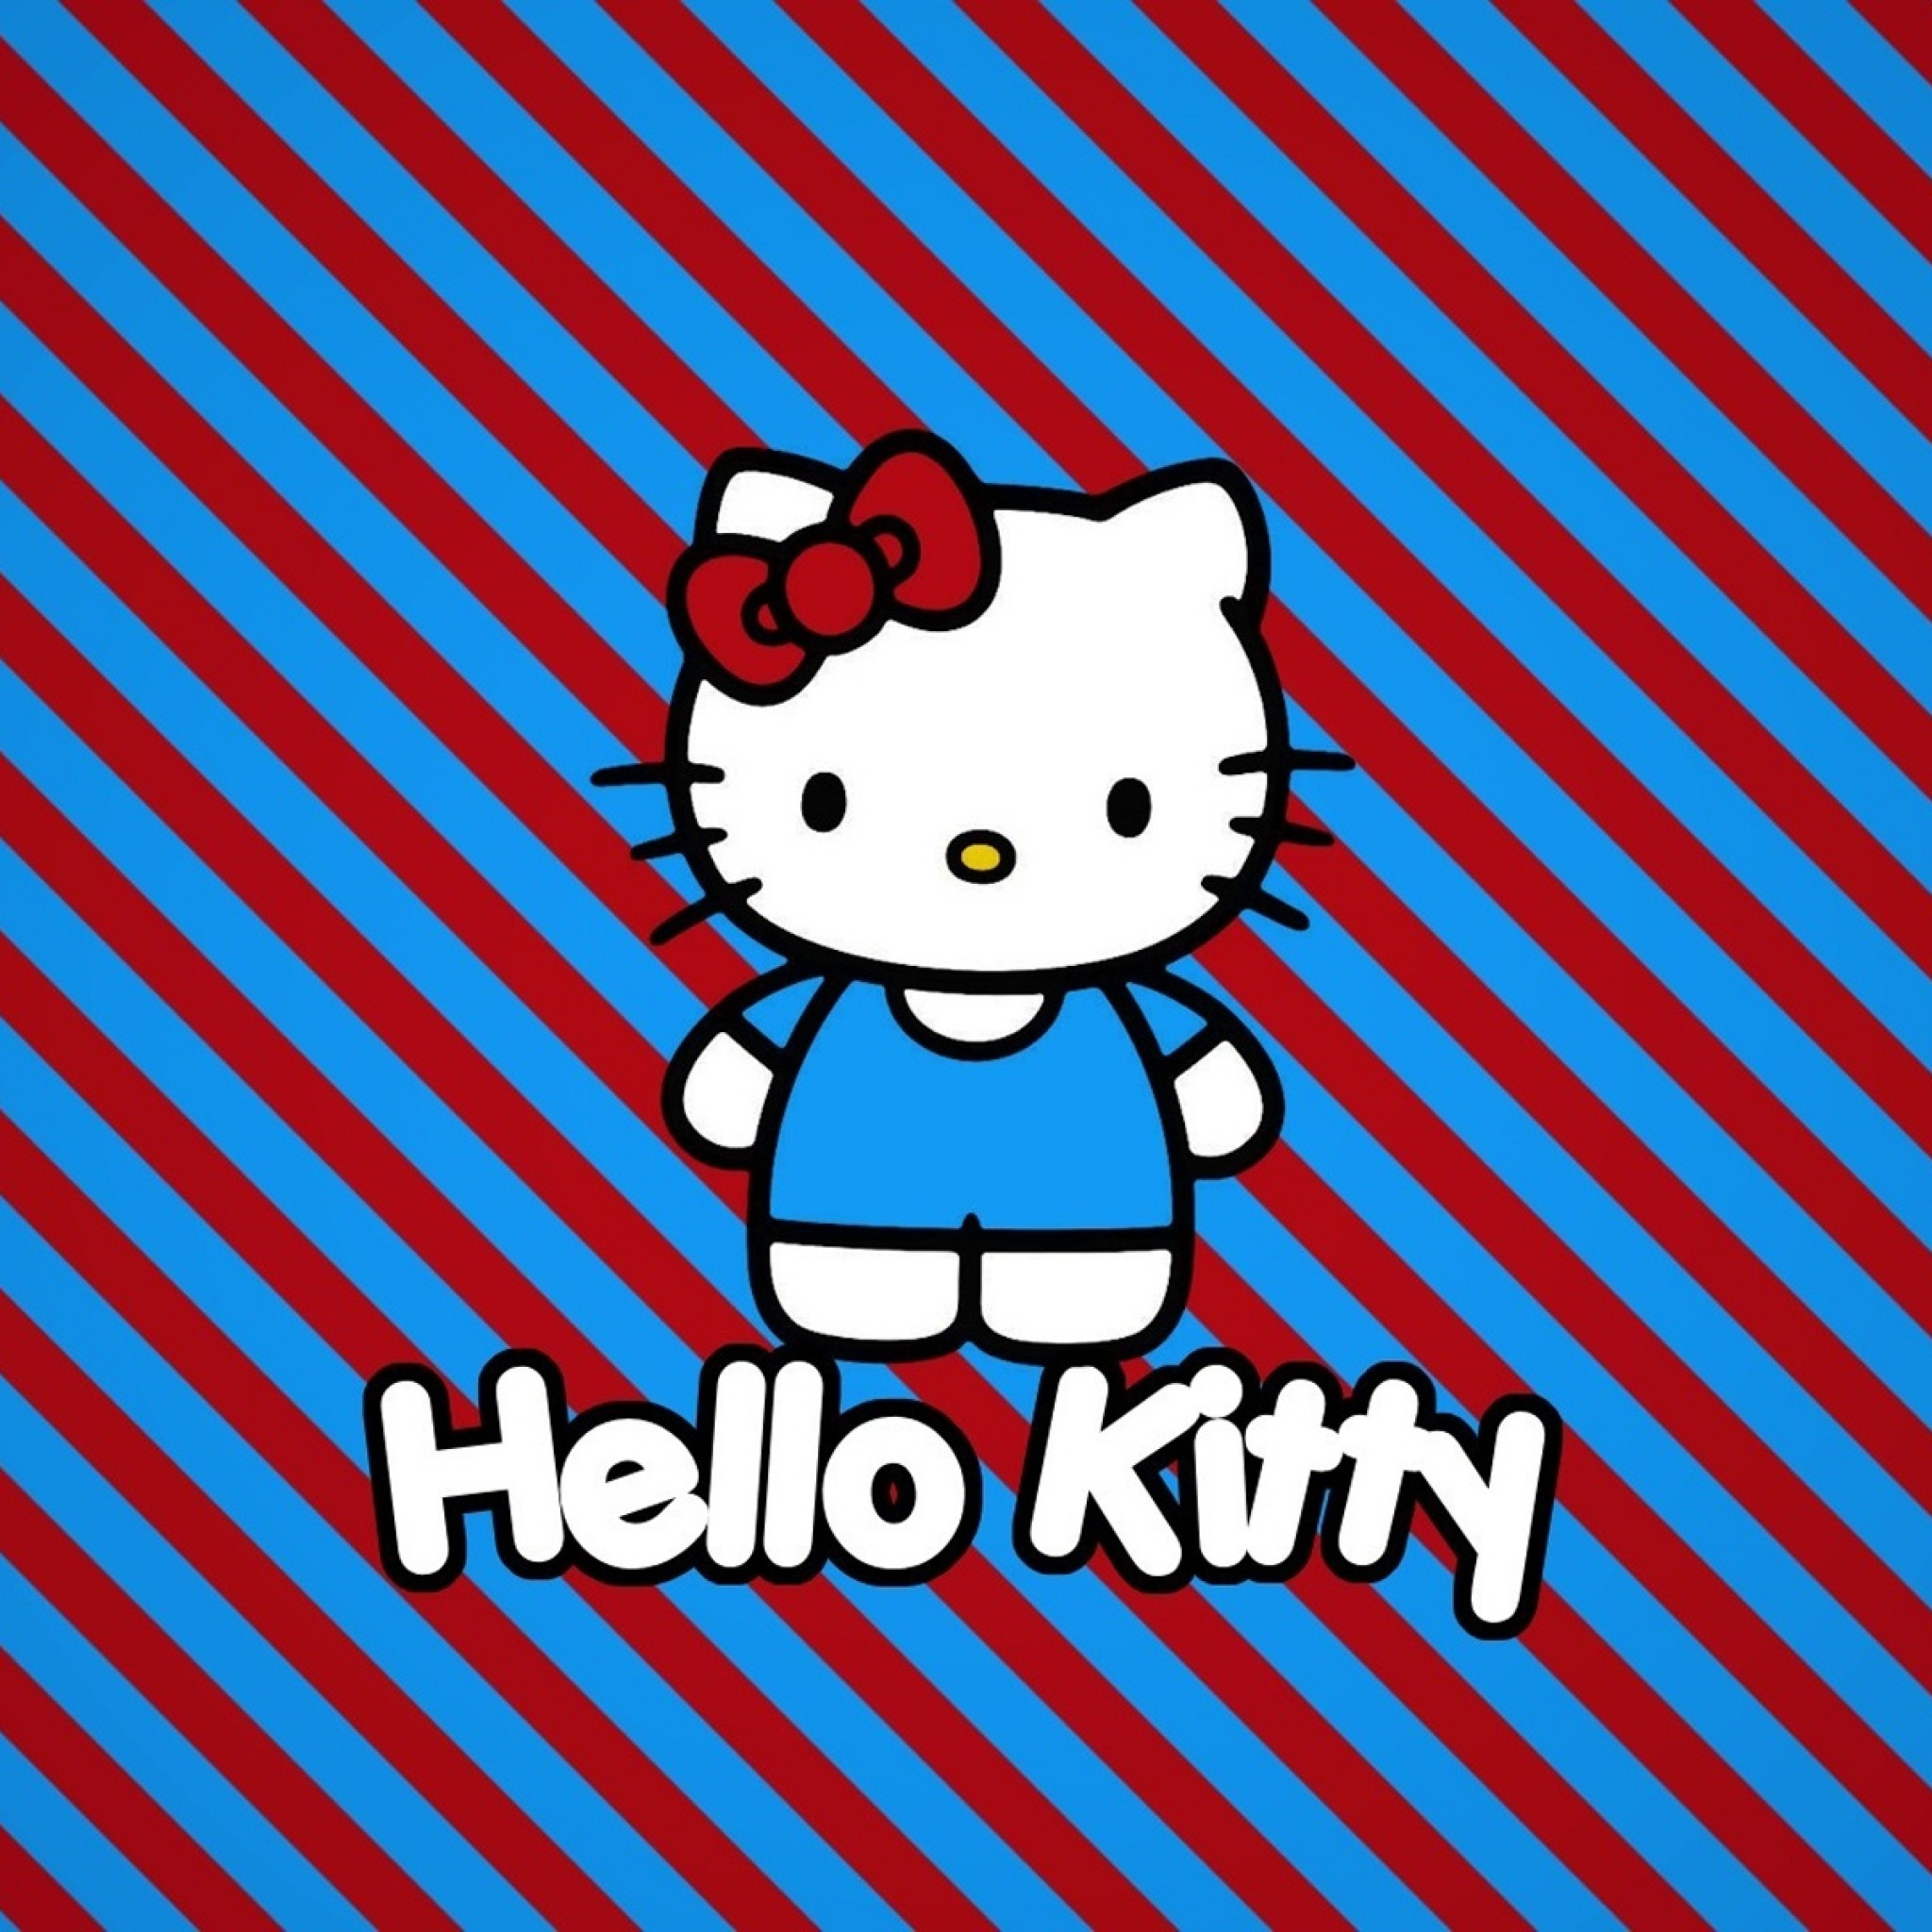 Hello Kitty iPad Wallpaper - WallpaperSafari